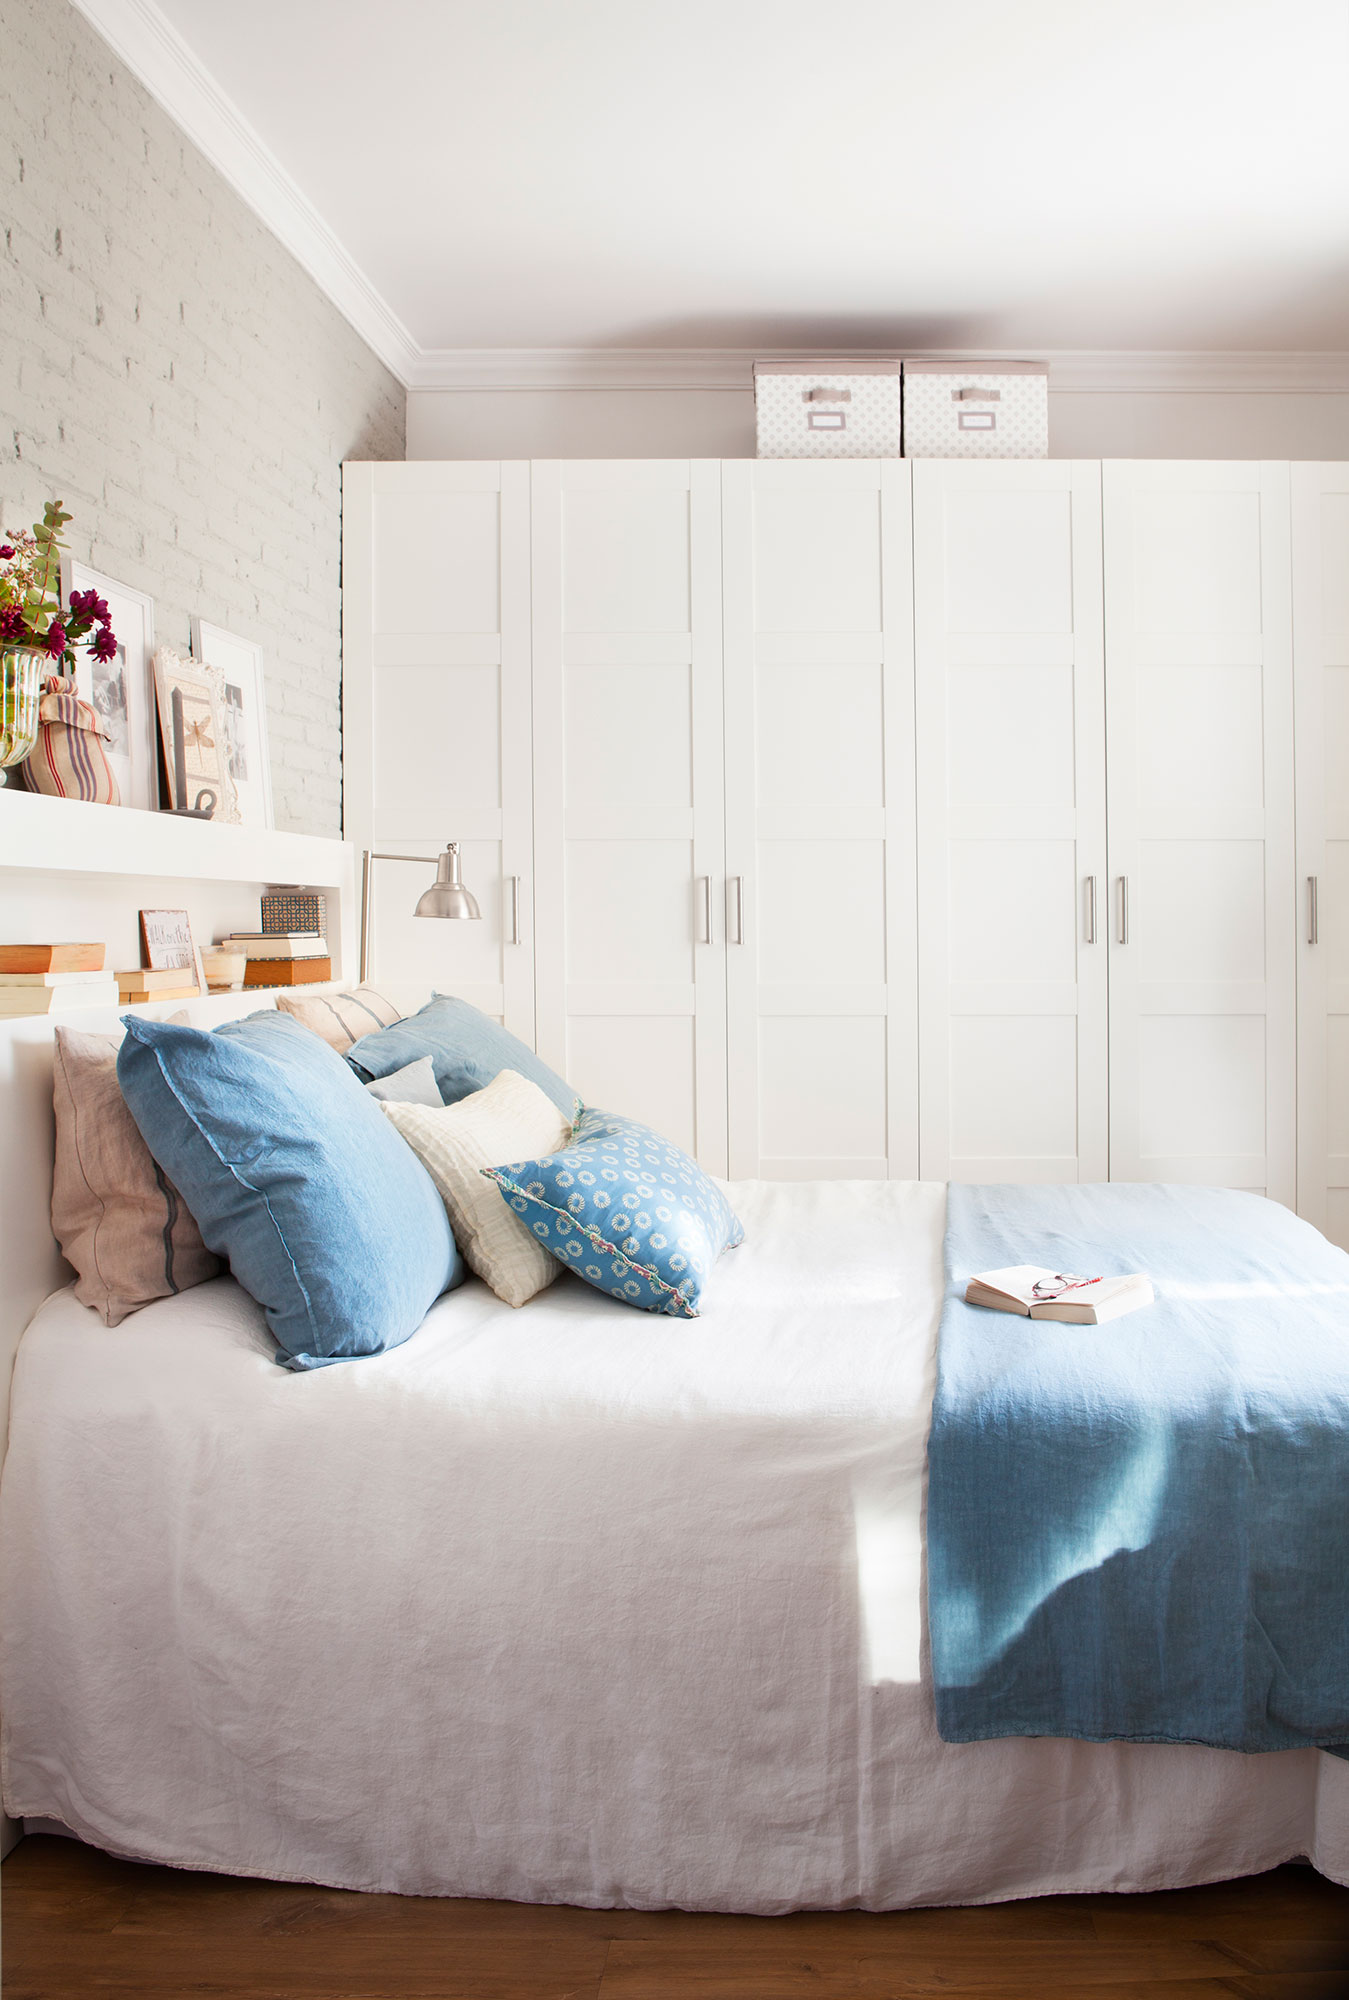 Compartir piso 10 ideas low cost para decorar tu dormitorio for Decorar paredes grandes